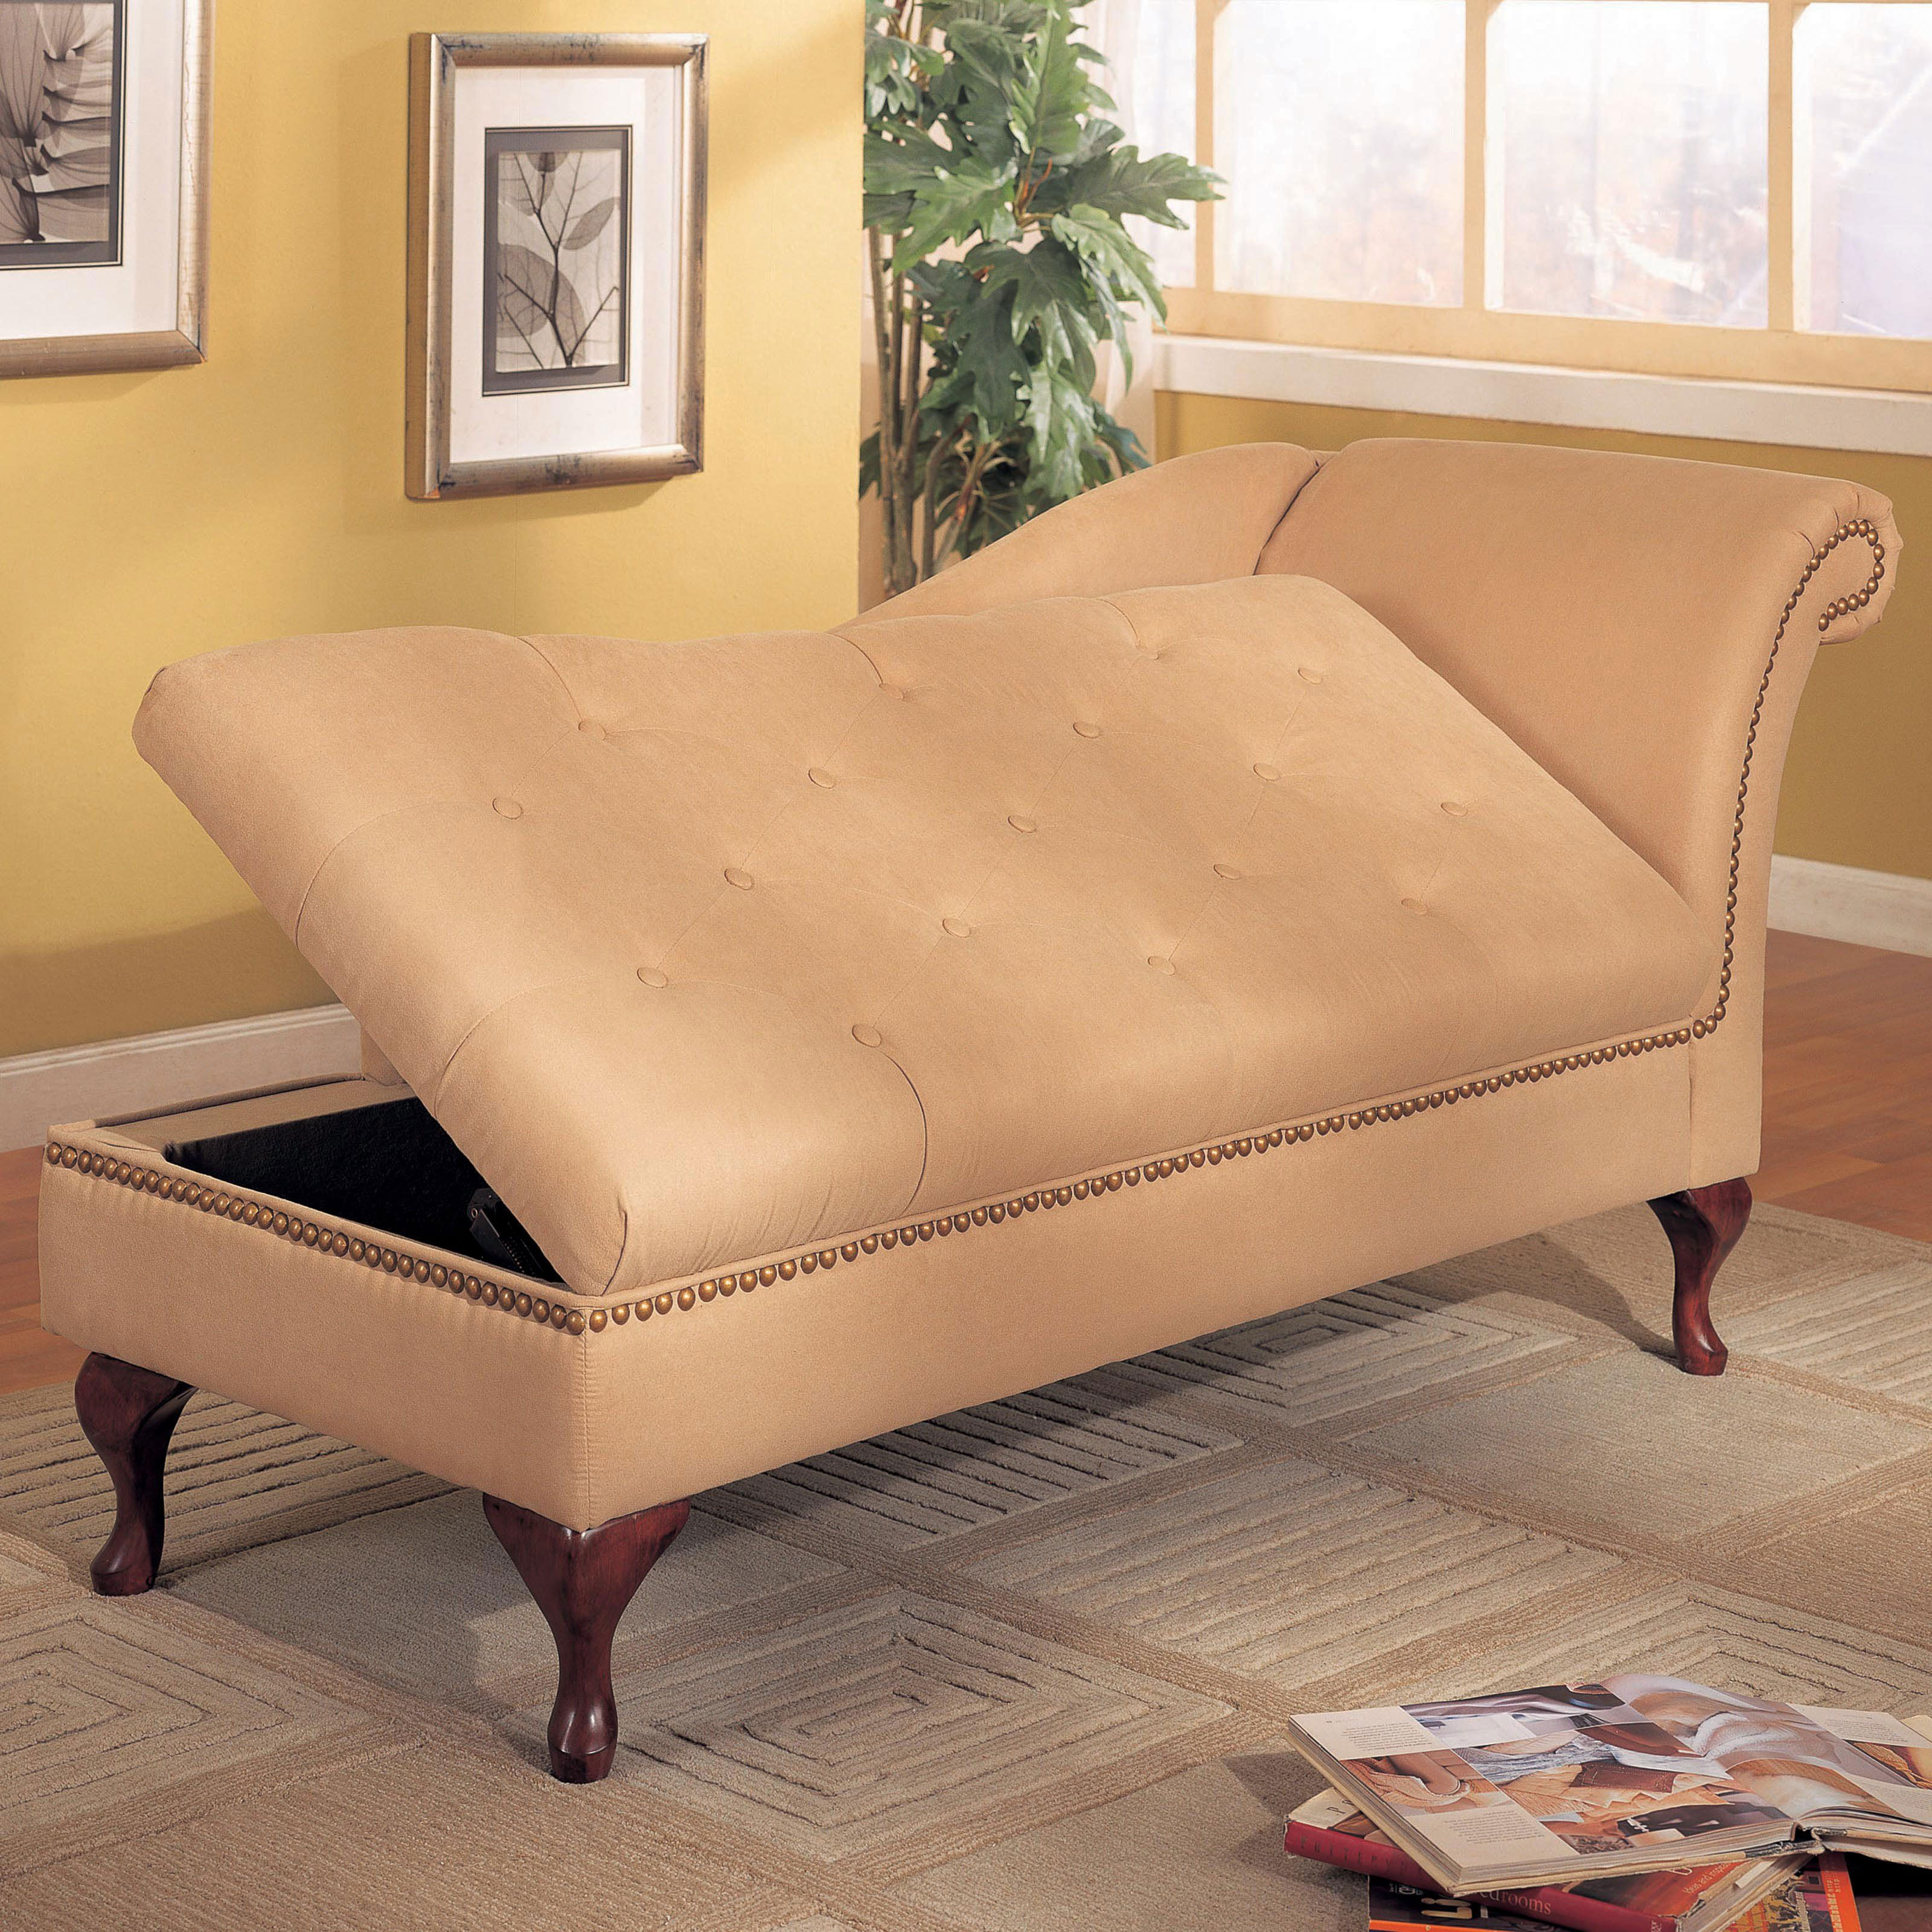 Groovy Delta Storage Chaise Lounge This Will Be In My House One Gmtry Best Dining Table And Chair Ideas Images Gmtryco